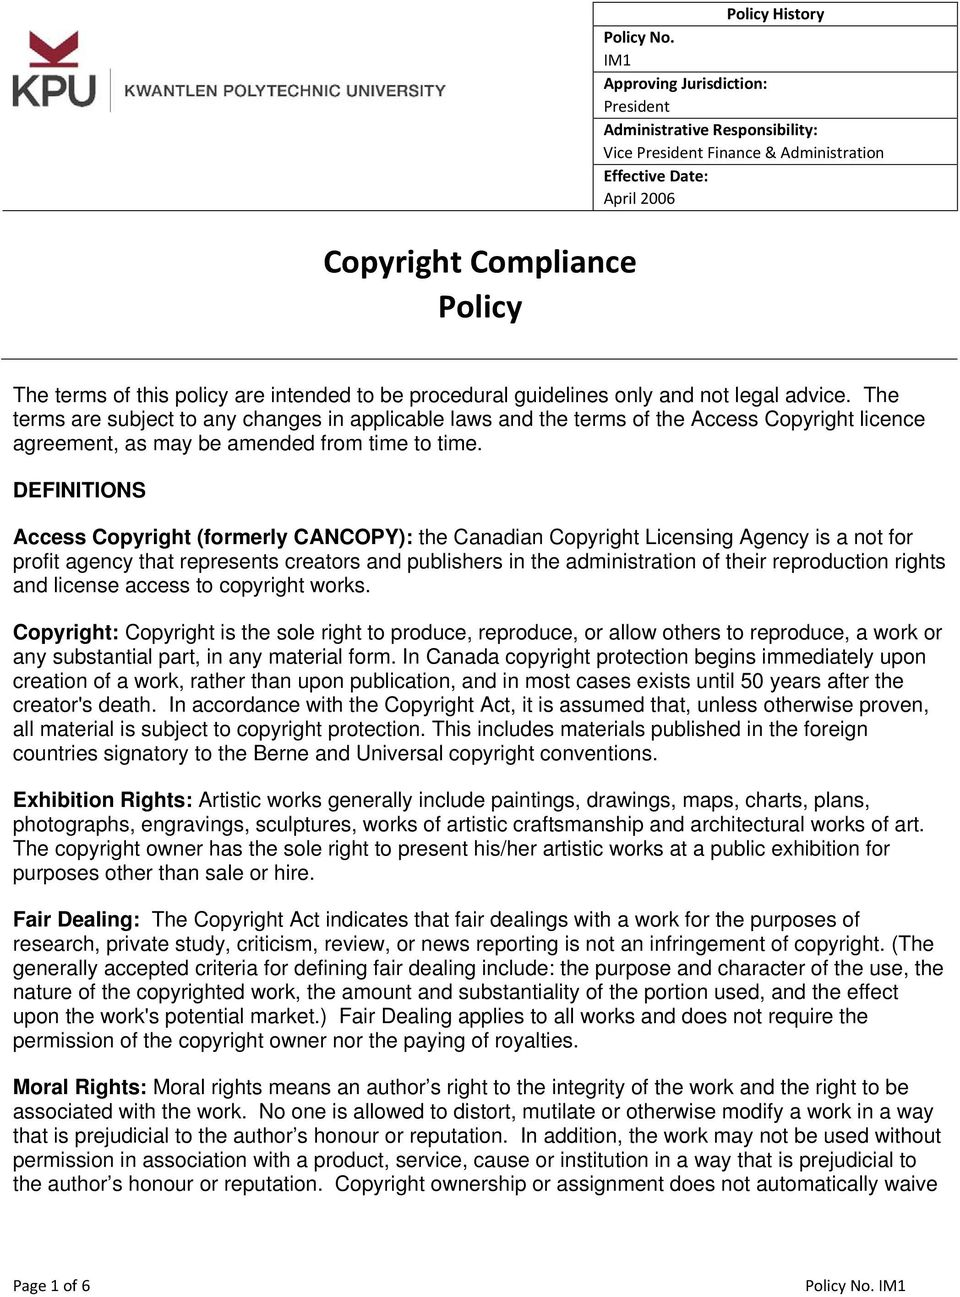 guidelines only and not legal advice. The terms are subject to any changes in applicable laws and the terms of the Access Copyright licence agreement, as may be amended from time to time.